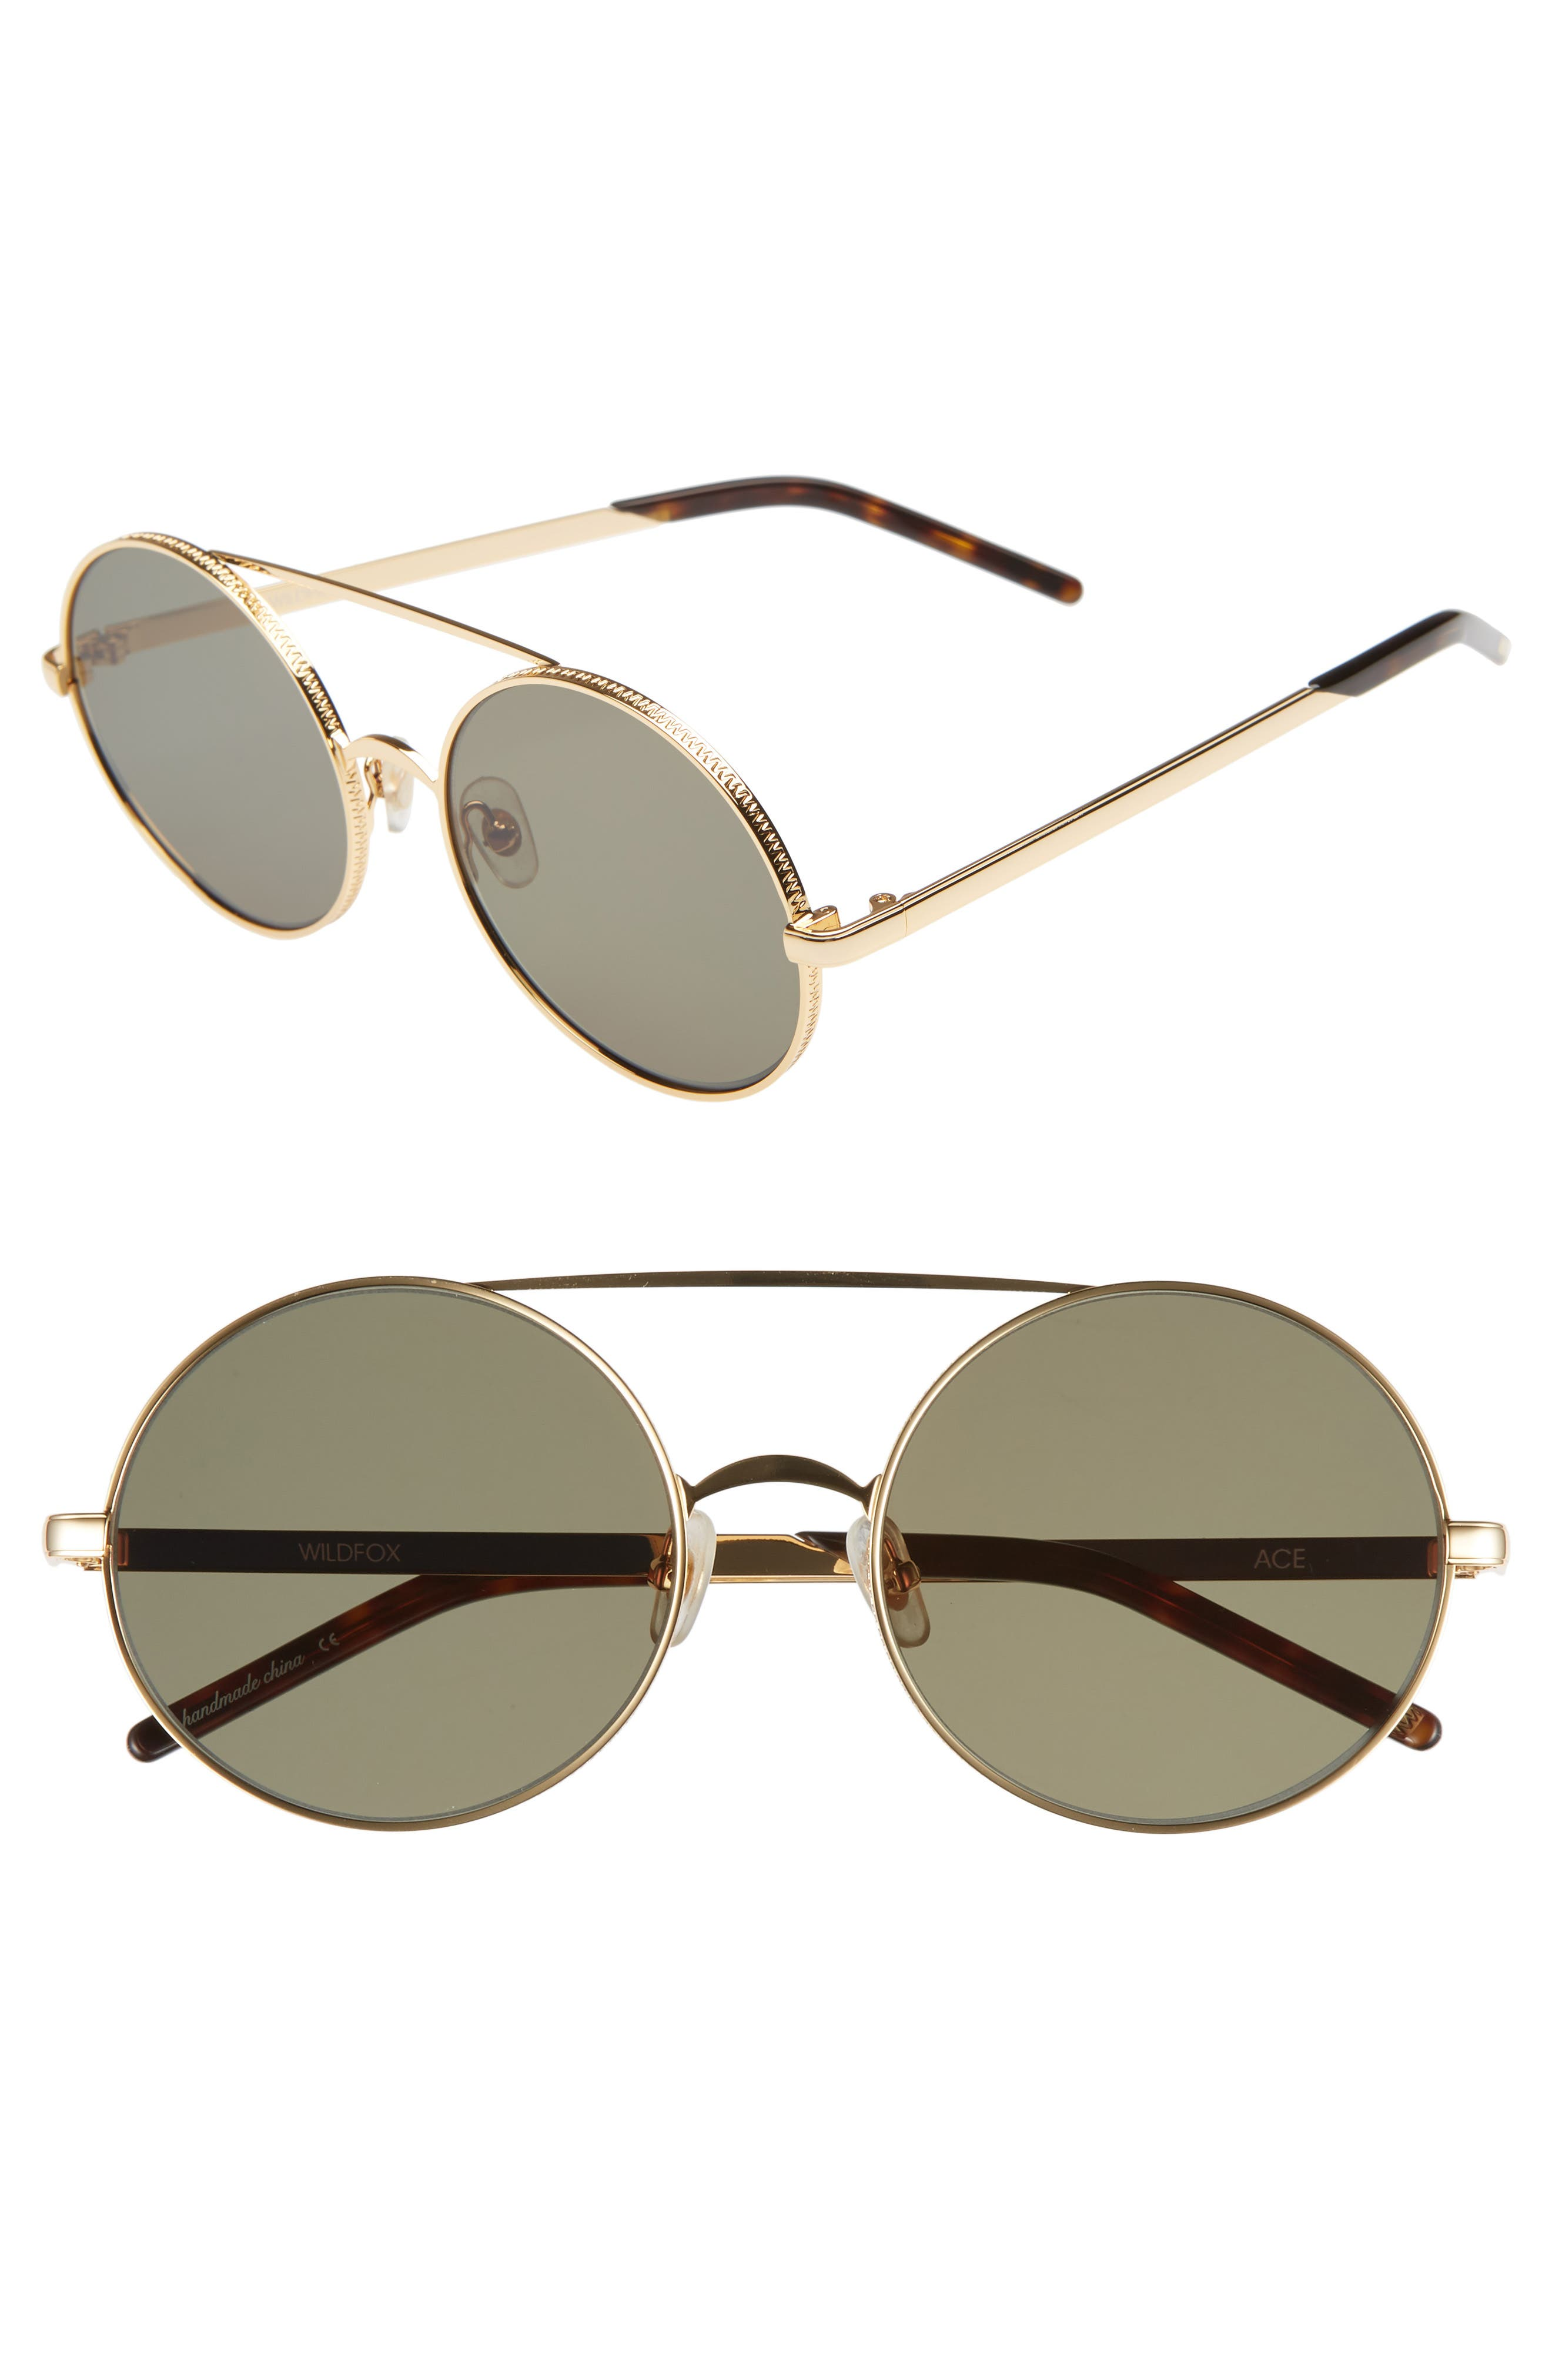 Ace 55mm Round Sunglasses,                             Main thumbnail 1, color,                             GOLD/ G 15 SOLID